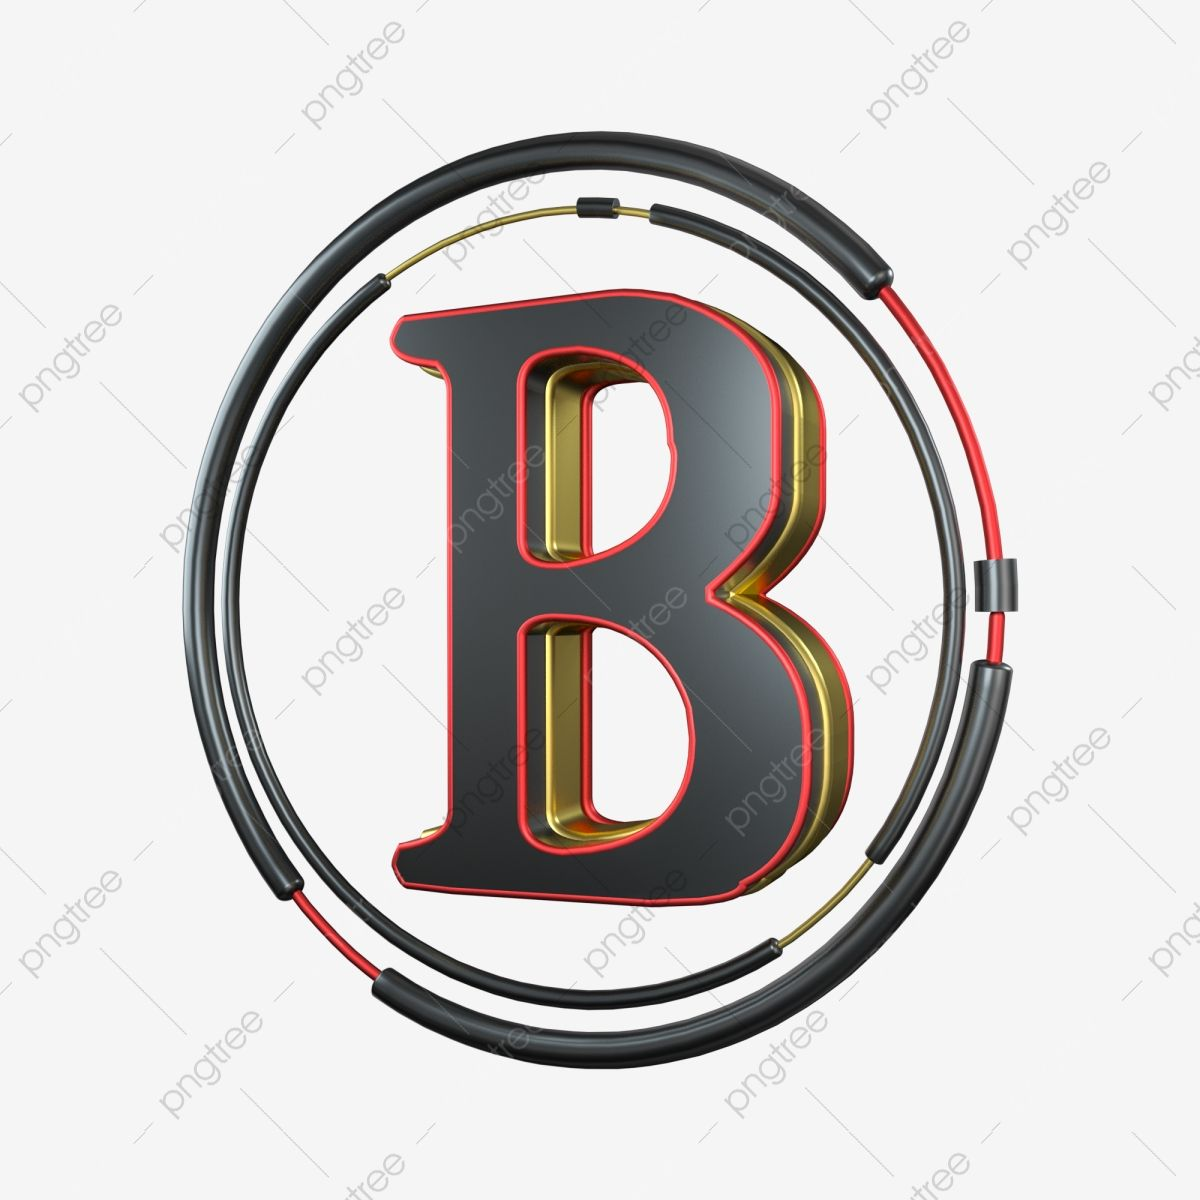 C4d Cool Black Red Gold Three Dimensional Letter B Decoration C4d 3d Cool Png Transparent Clipart Image And Psd File For Free Download Lettering Letter B Clip Art